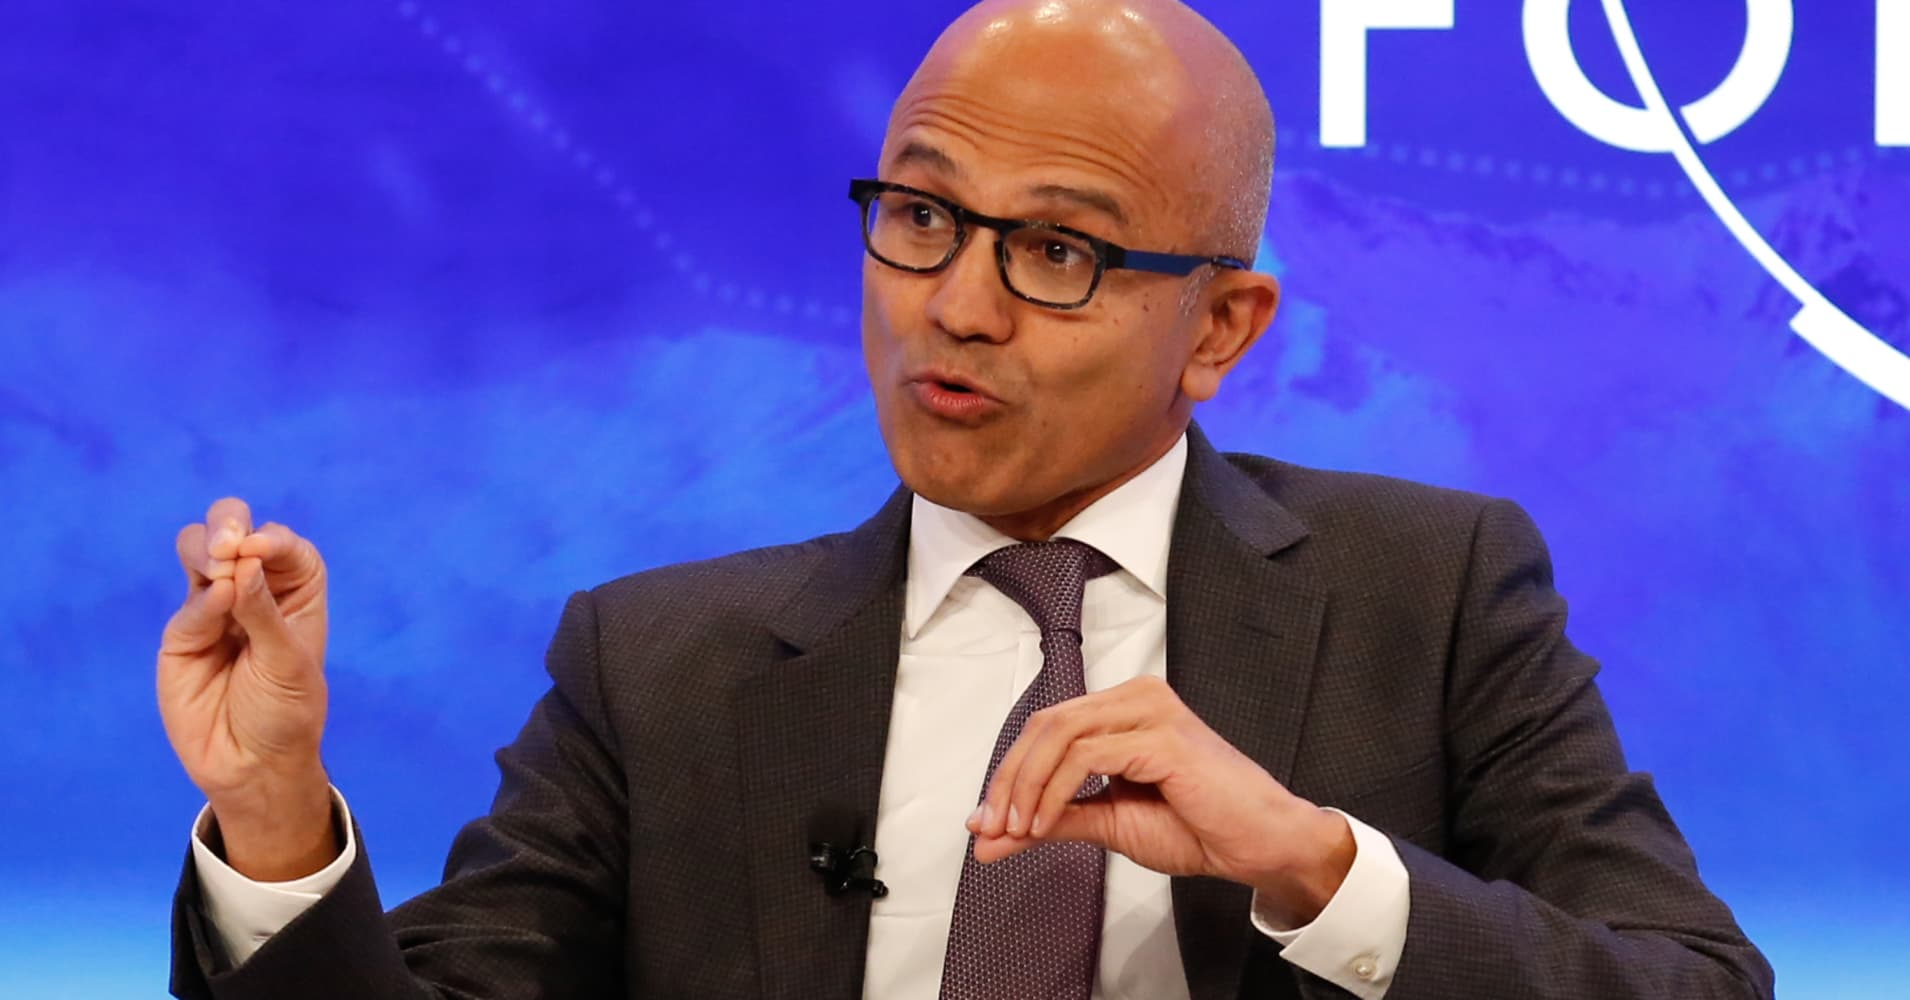 Microsoft CEO: Office 365 growth opportunity 'a lot bigger than anything we've achieved'